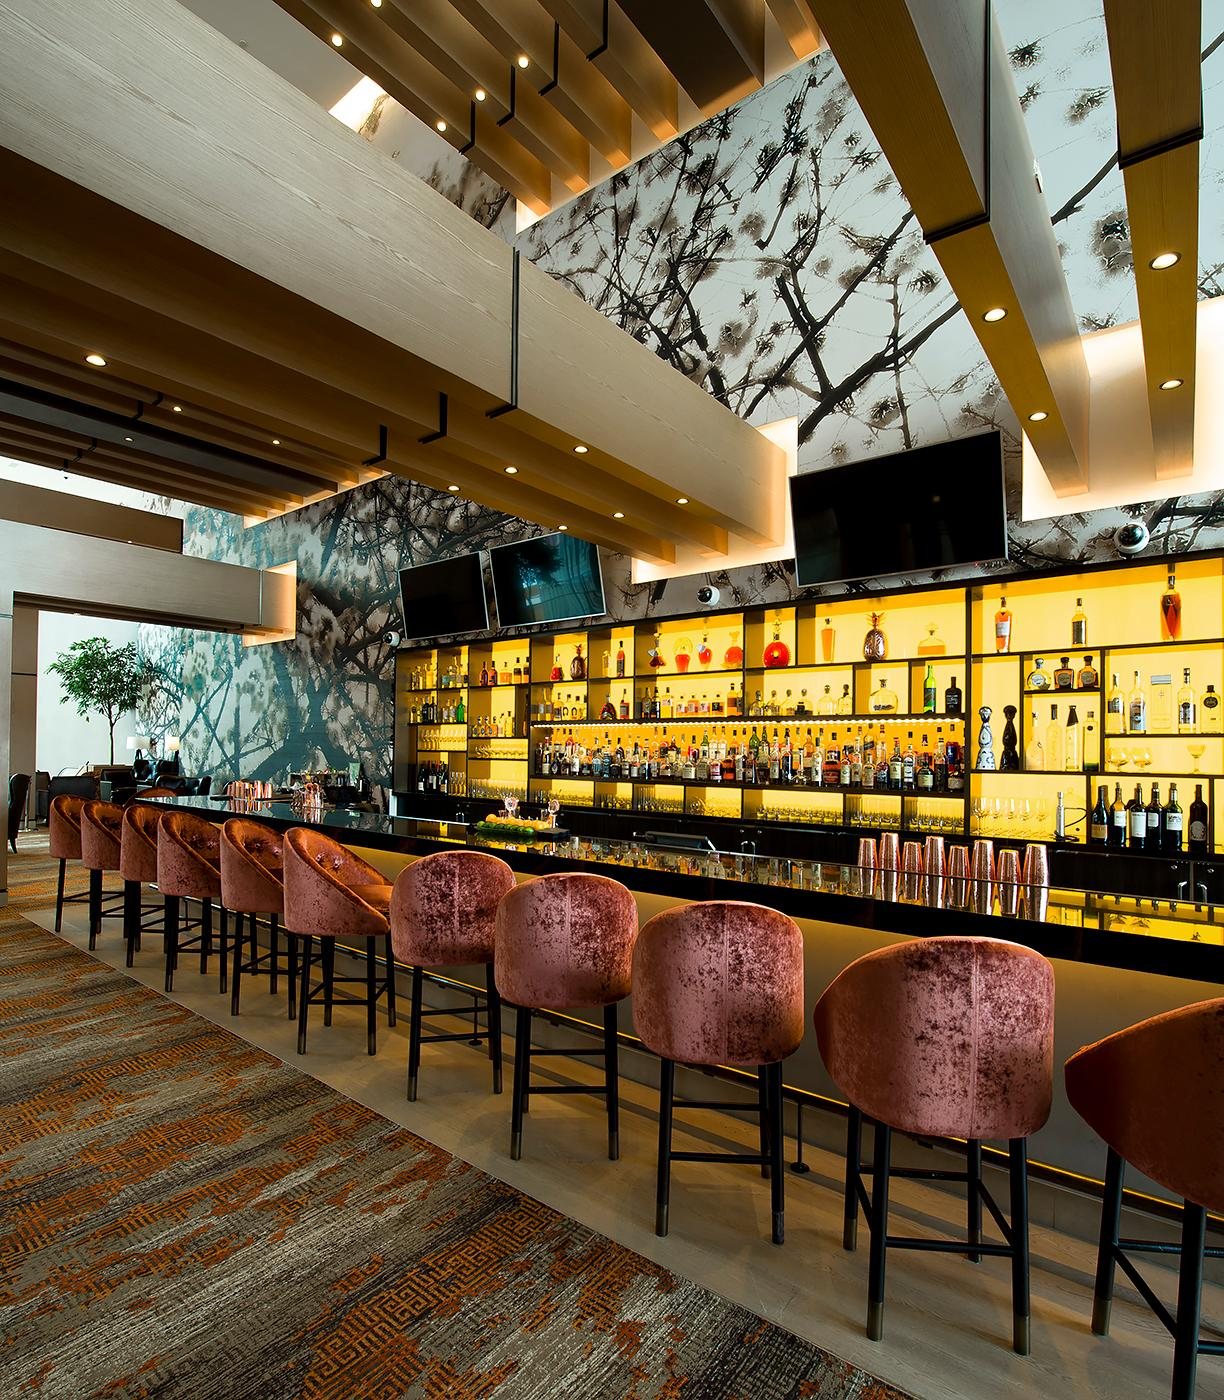 MGM National Harbor Hotel Lobby Bar (Image: Ronald Beverly)<p></p>